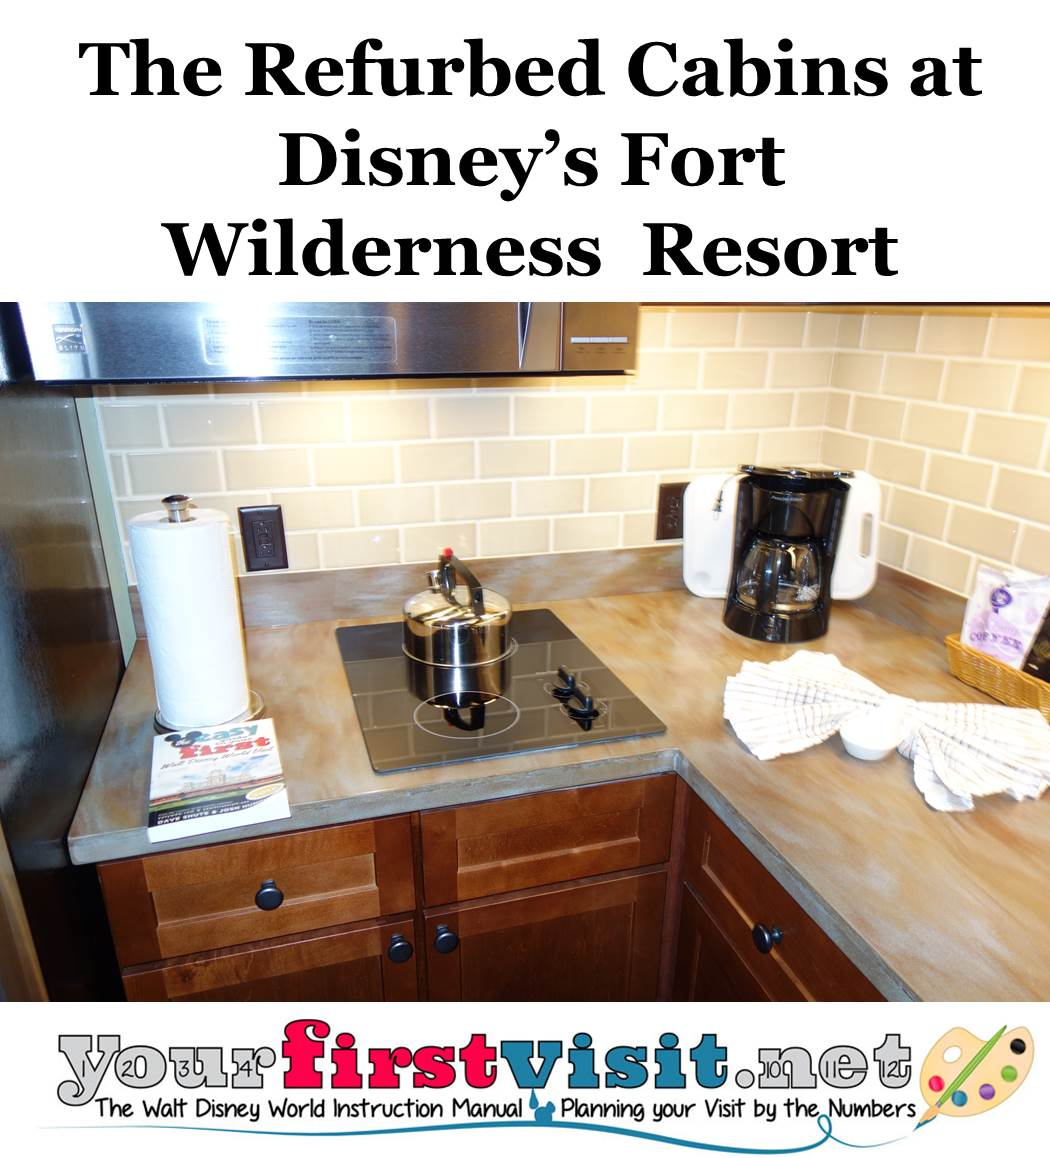 The Refurbed Cabins at Disney's Fort Wilderness Resort from yourfirstvisit.net